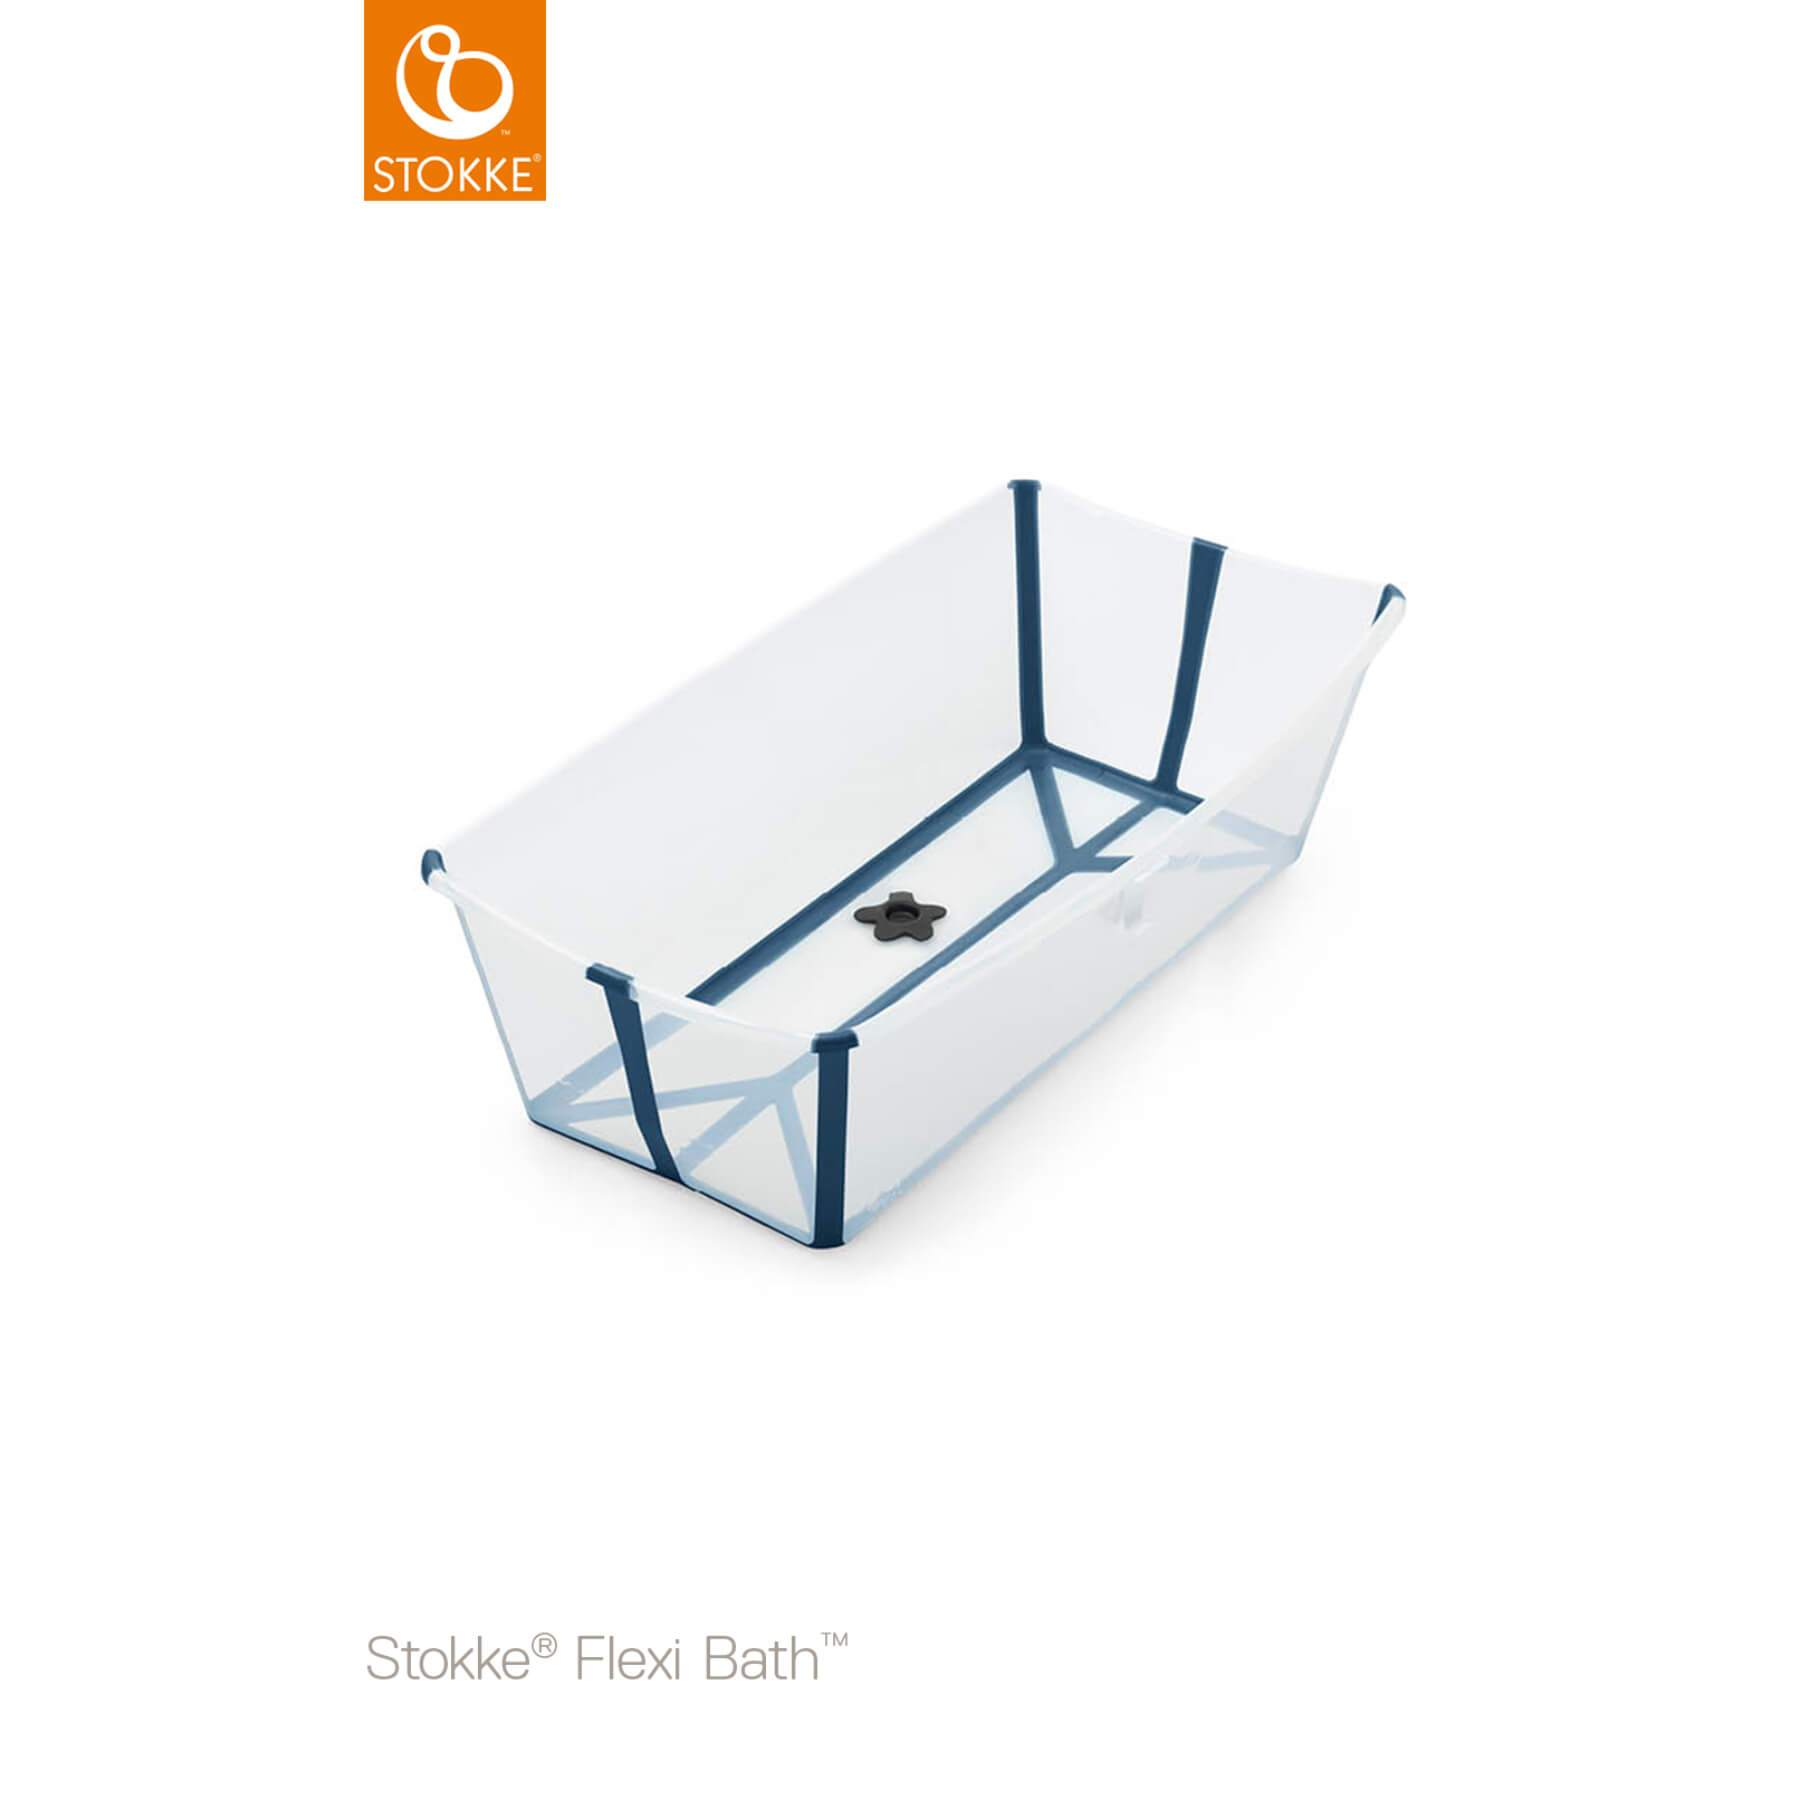 Stokke Flexibath Extra Large - Transparent Blue